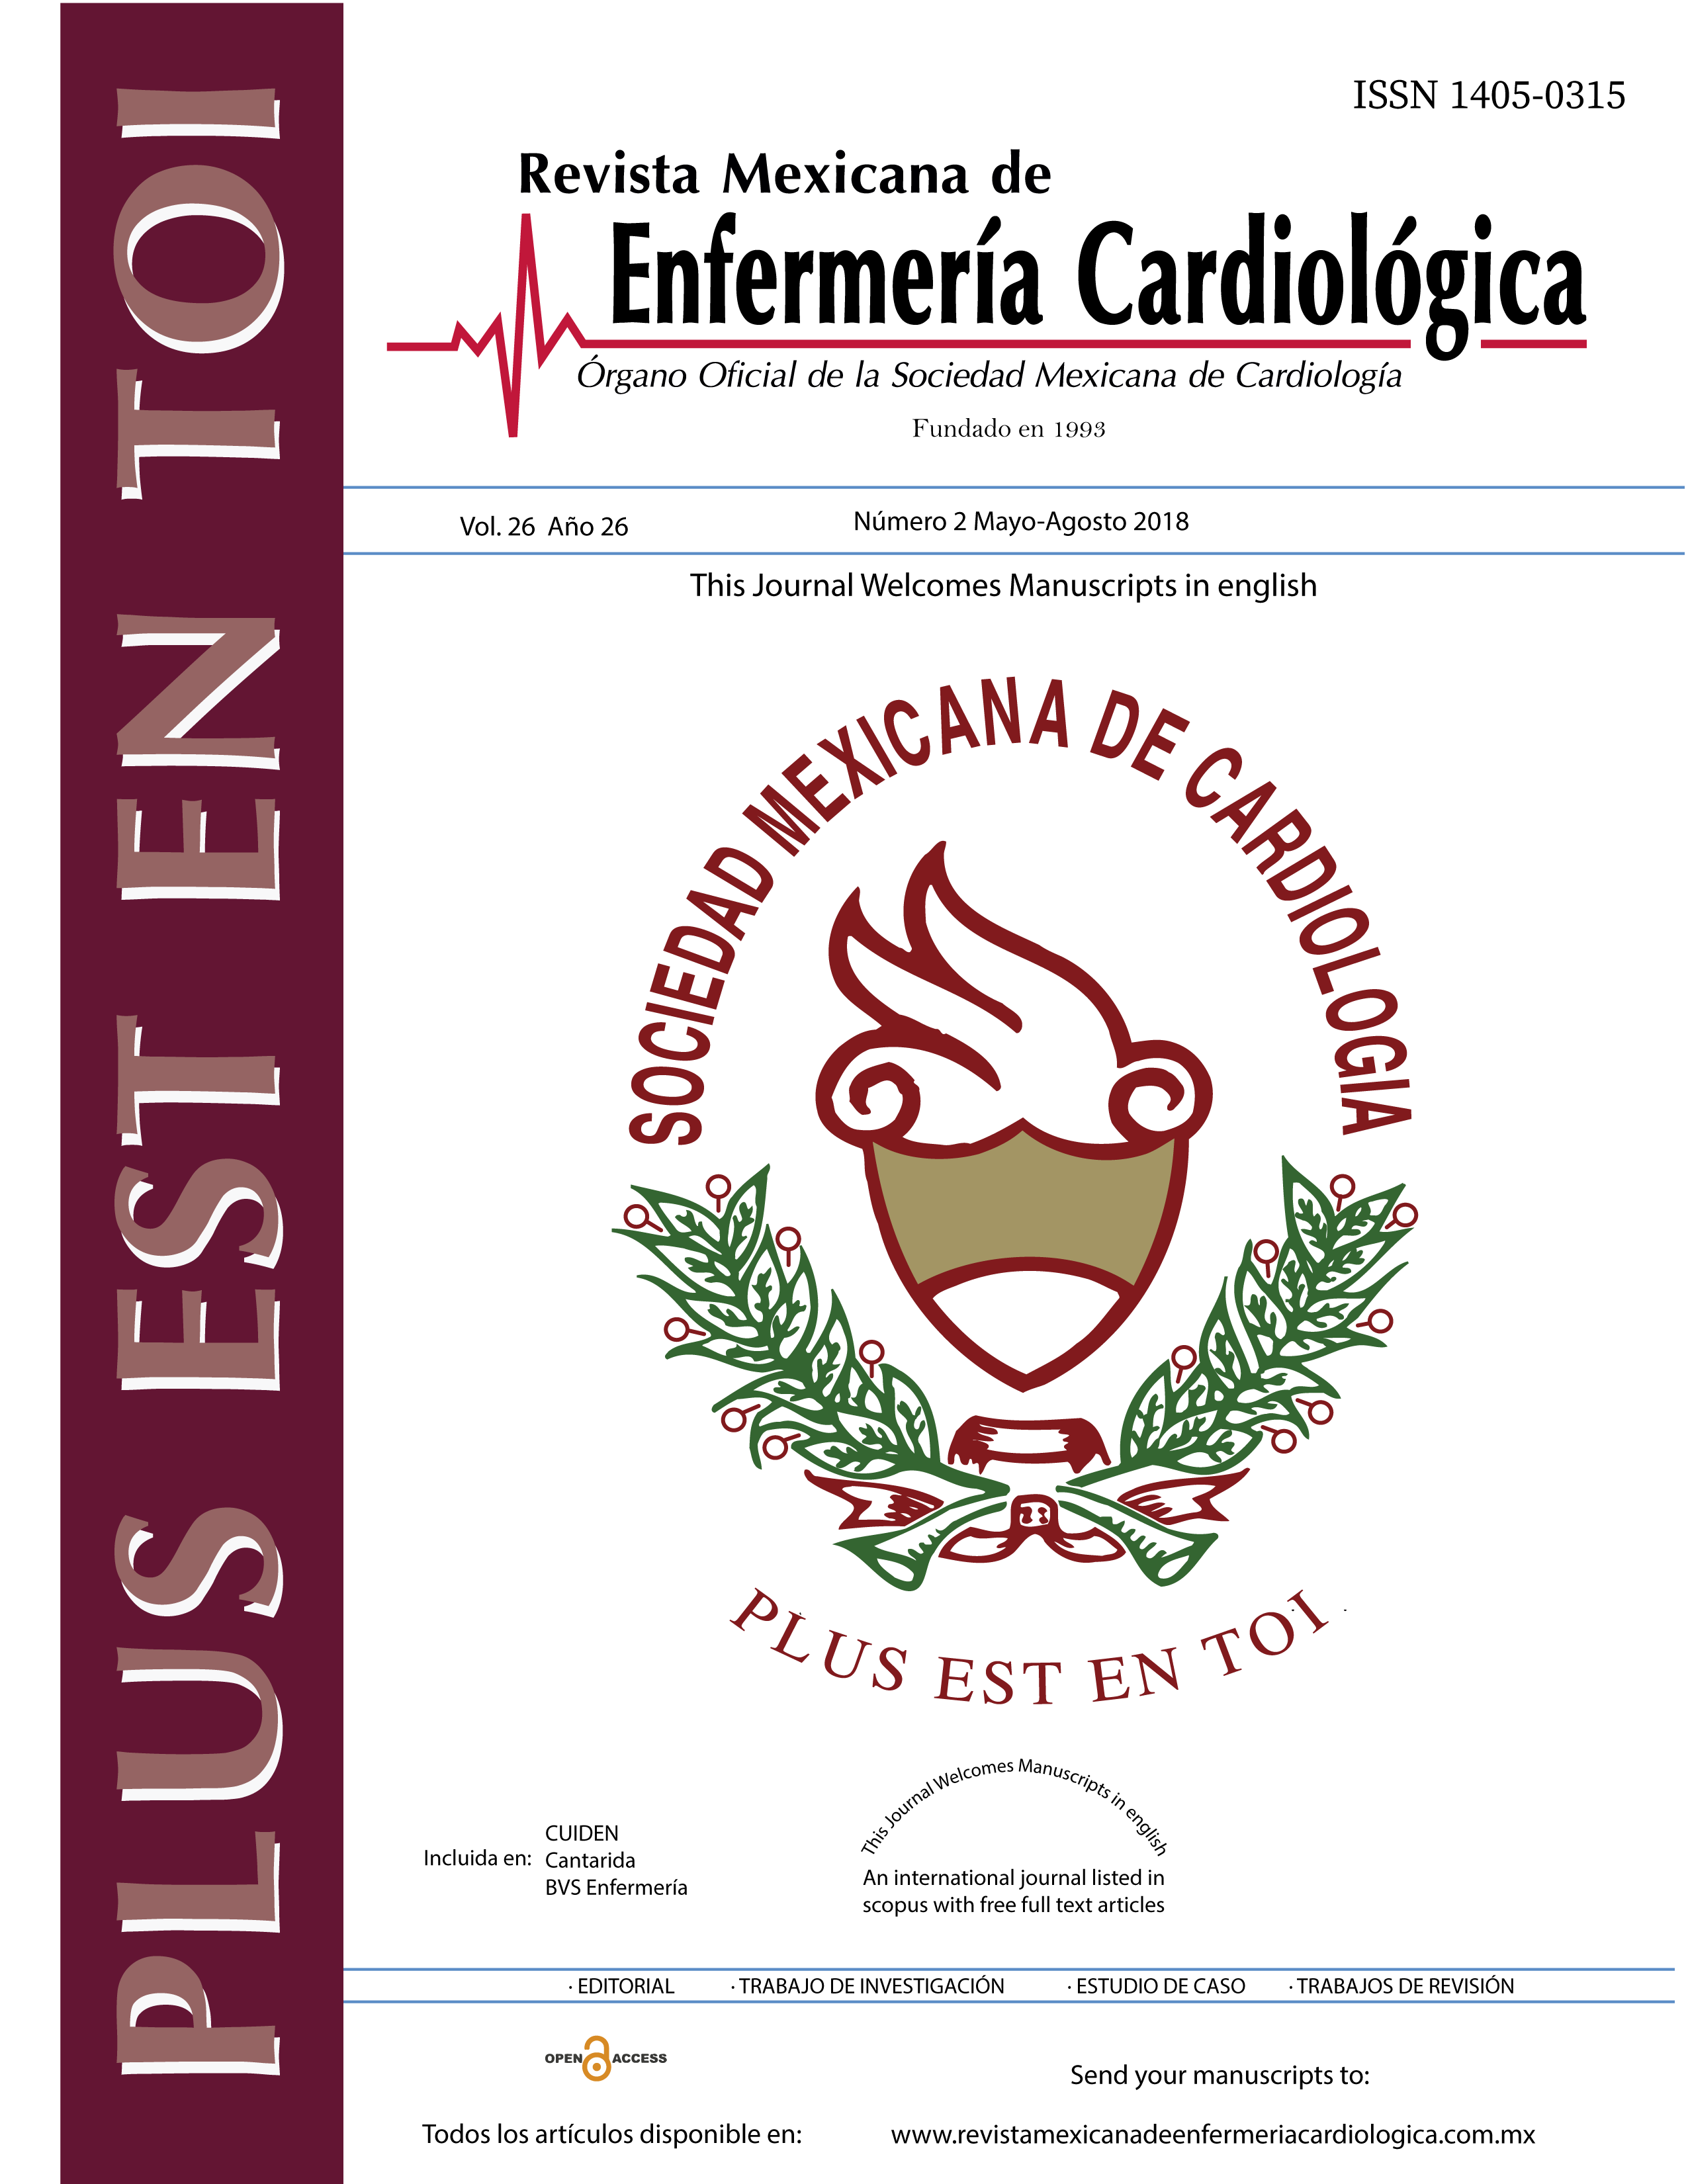 Rev Mex Enferm Cardiol. 2018;26(2):34-68